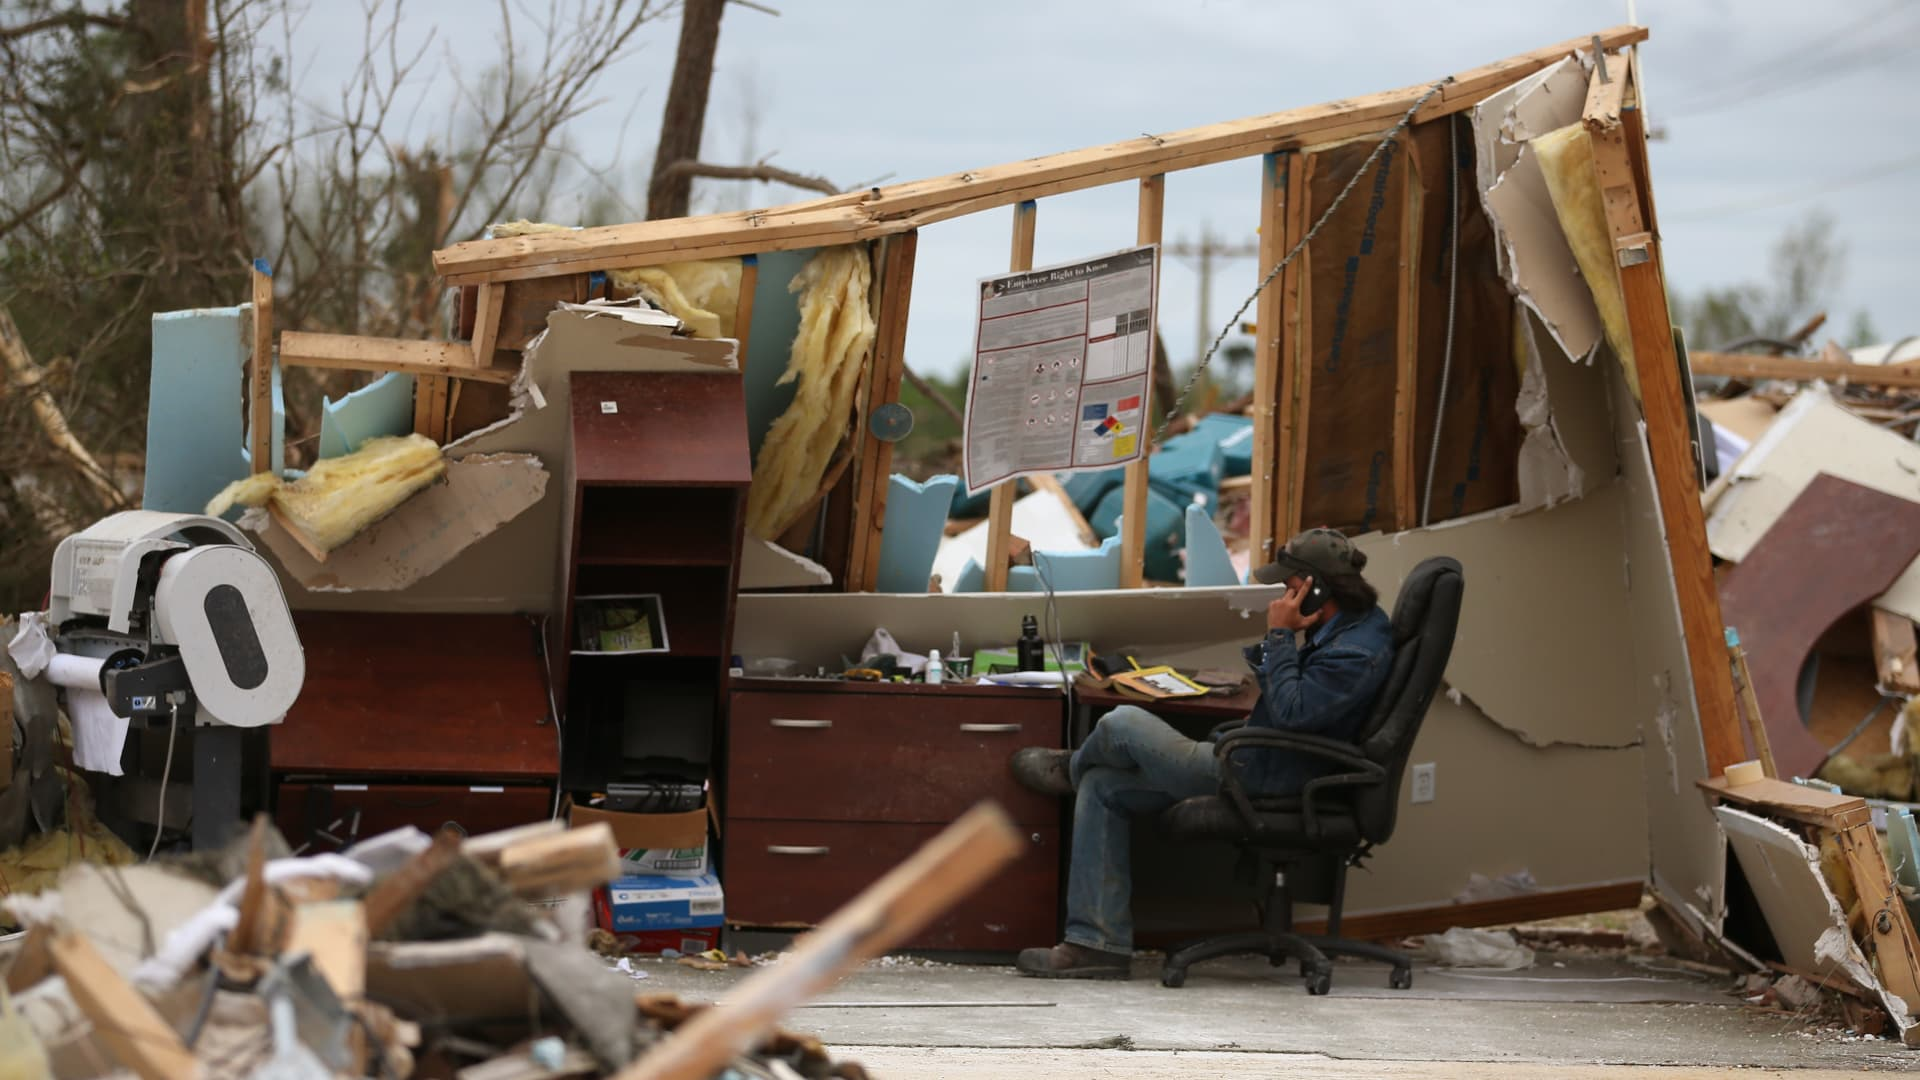 A man who wished not to be indentified talks on a phone in a business that was destroyed by a tornado in Mayflower, Arkansas.